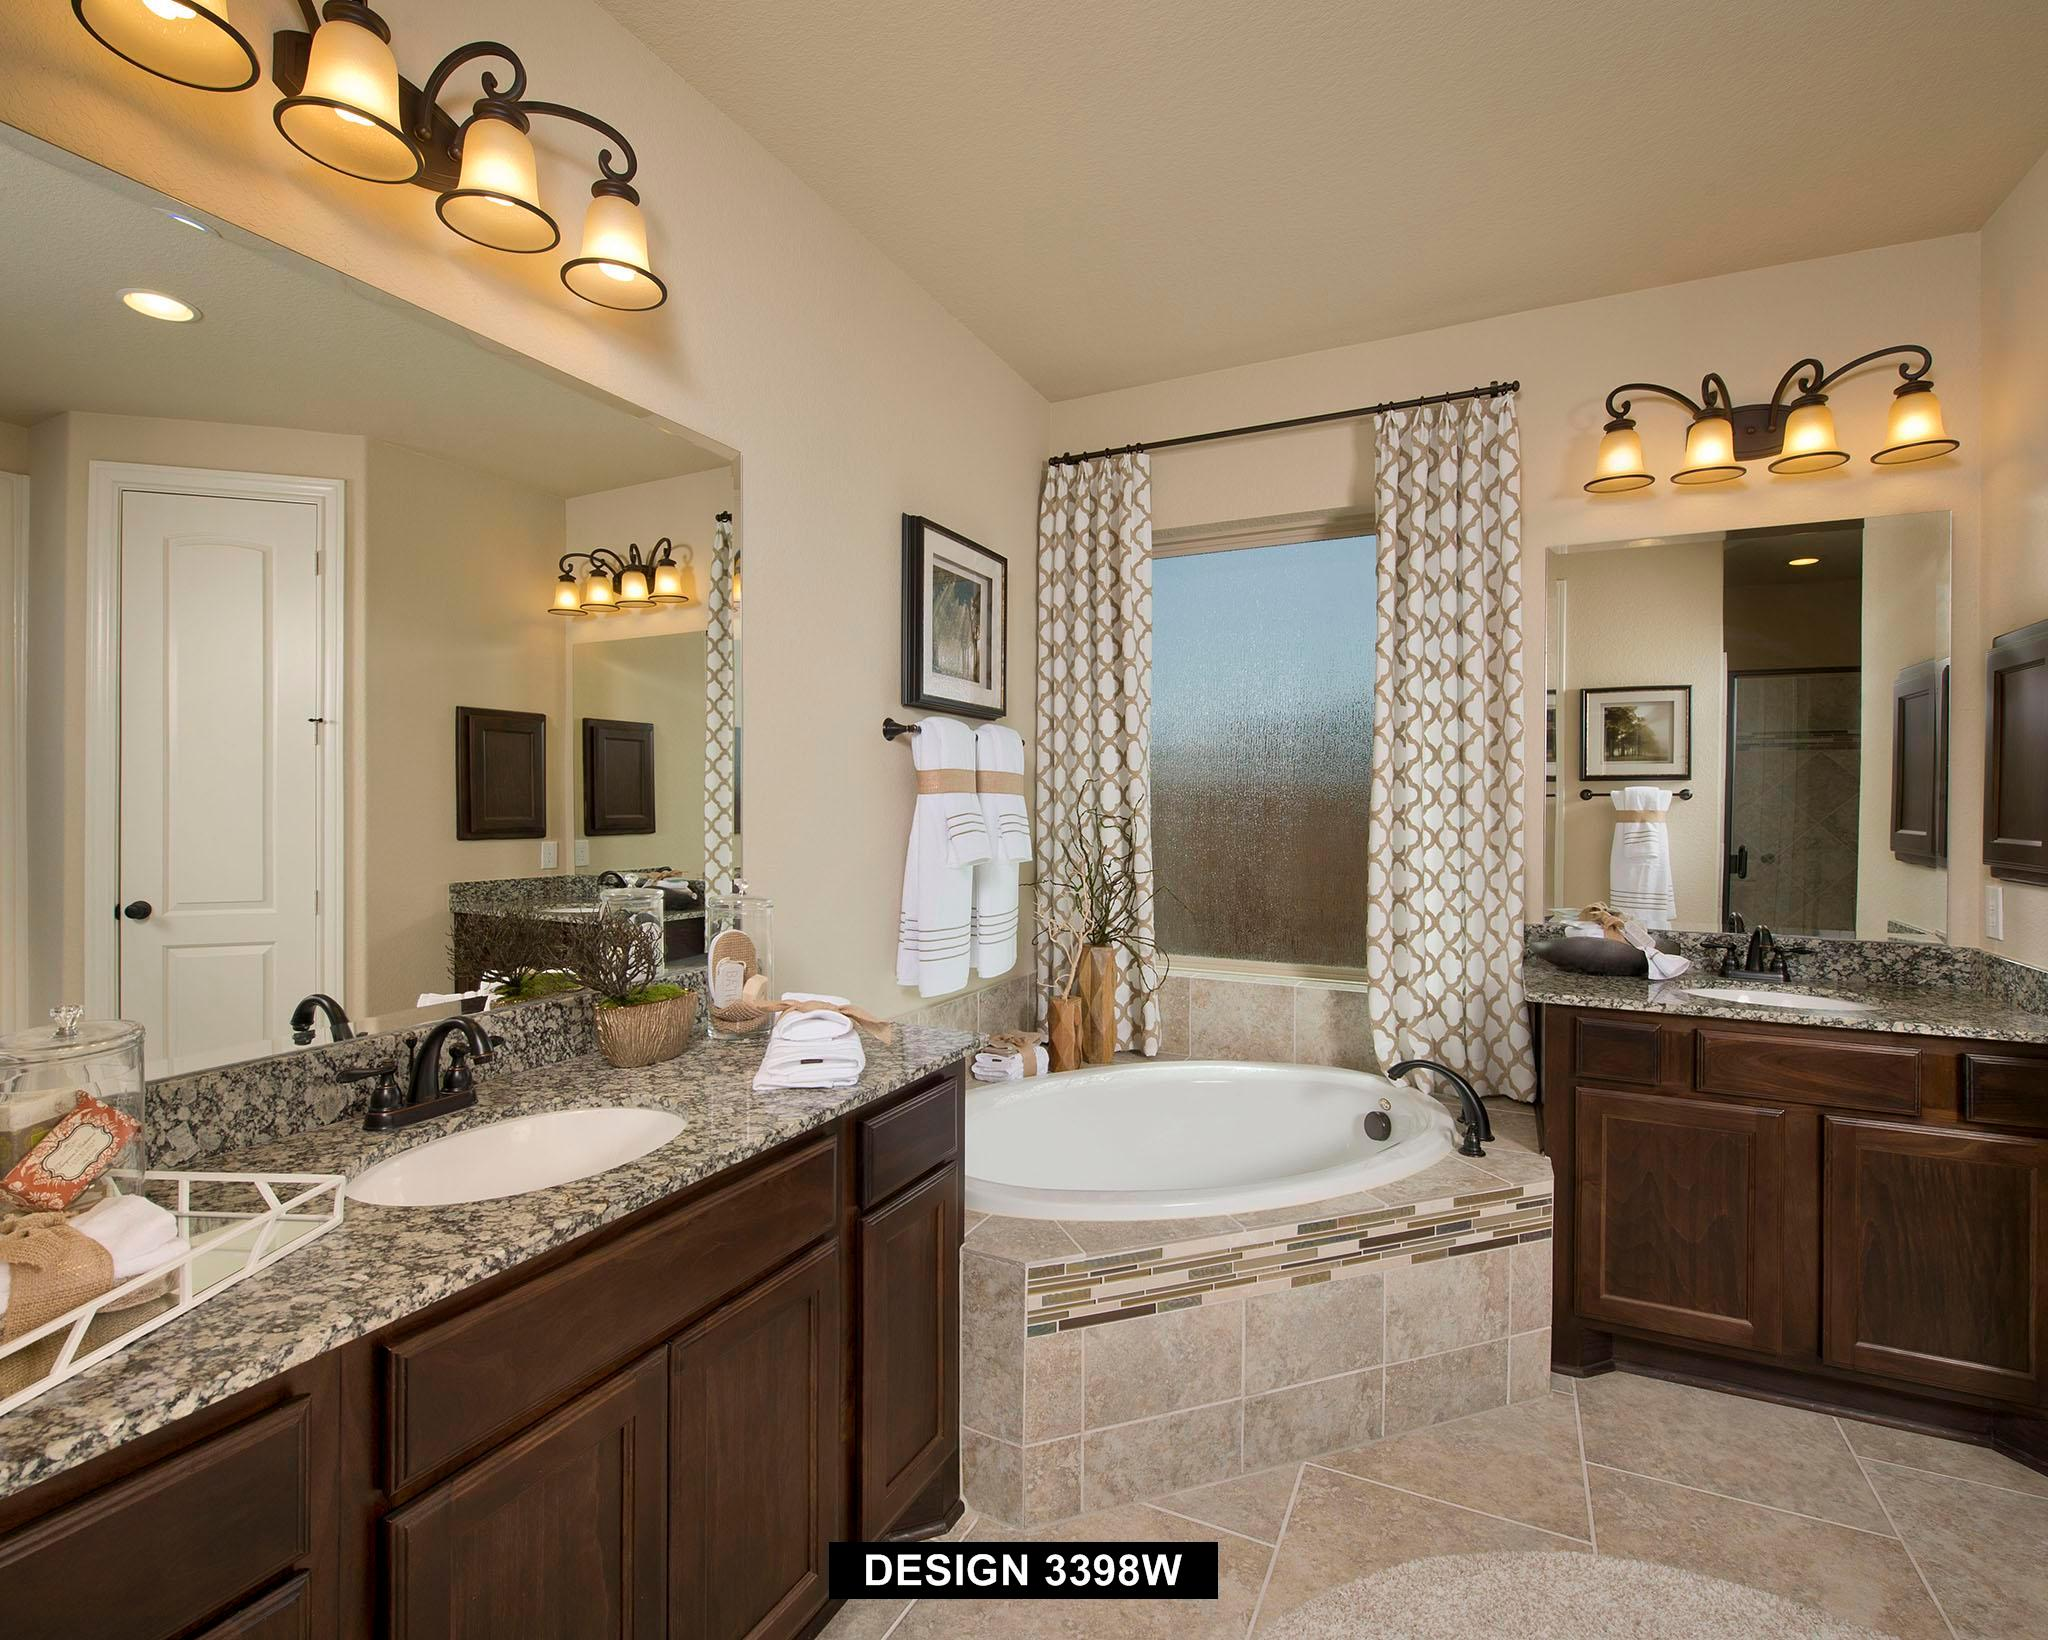 Bathroom featured in the 3398W By Perry Homes in Houston, TX